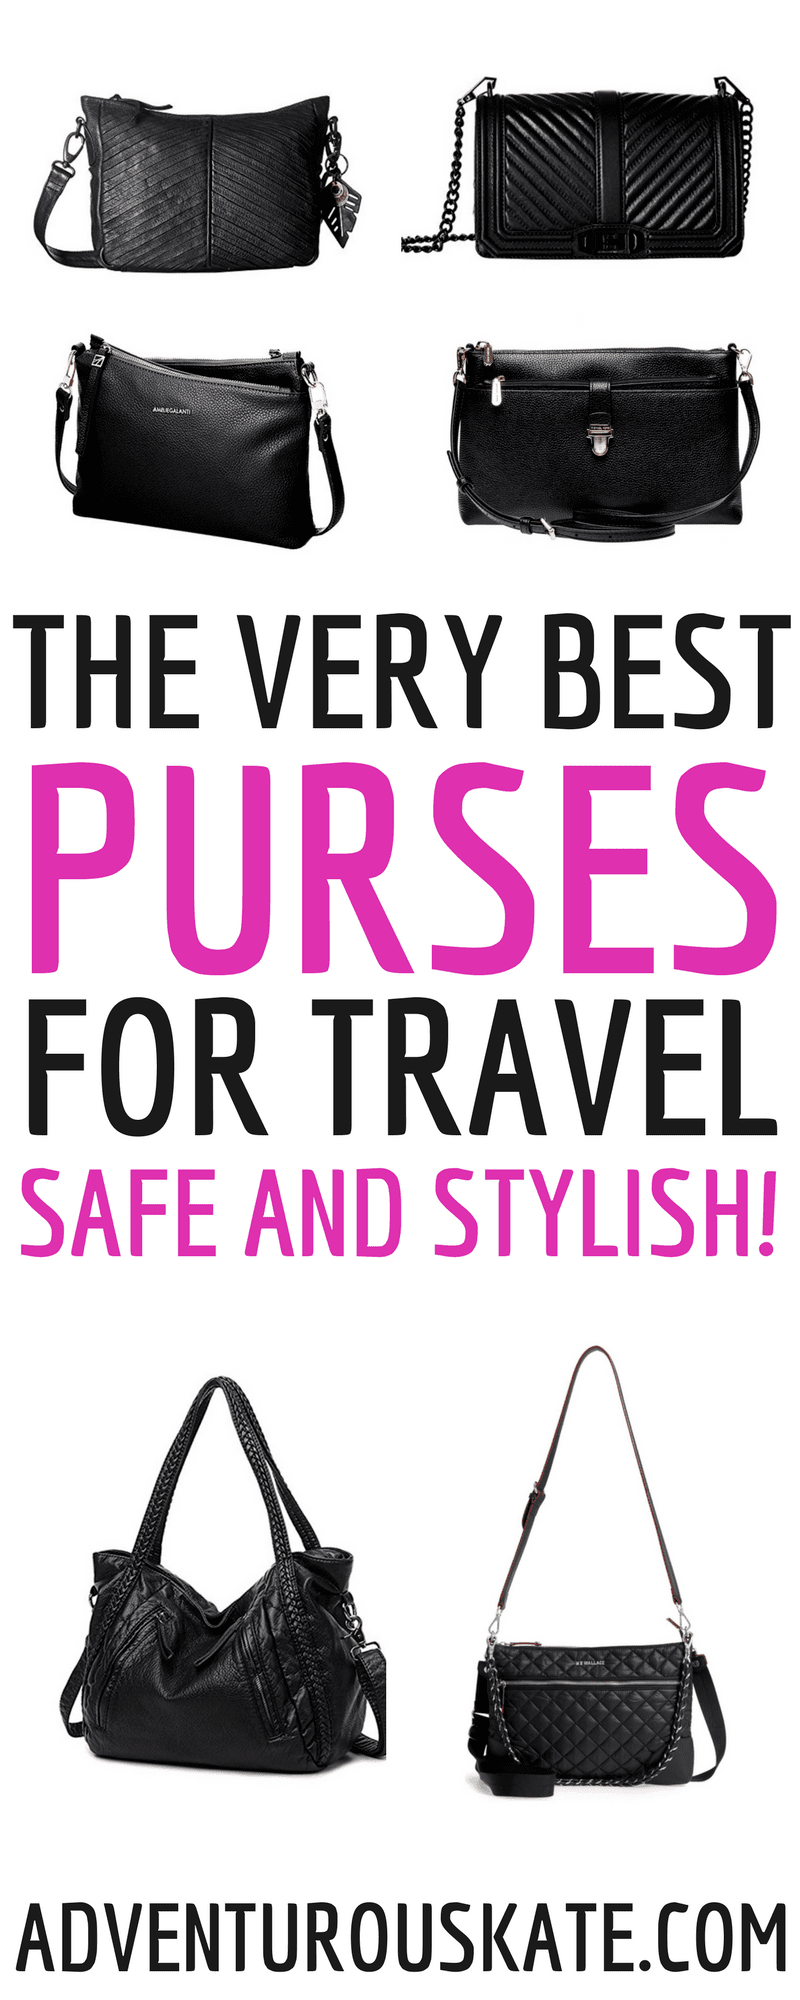 What Kind Of Purse Do You Use On Your Travels